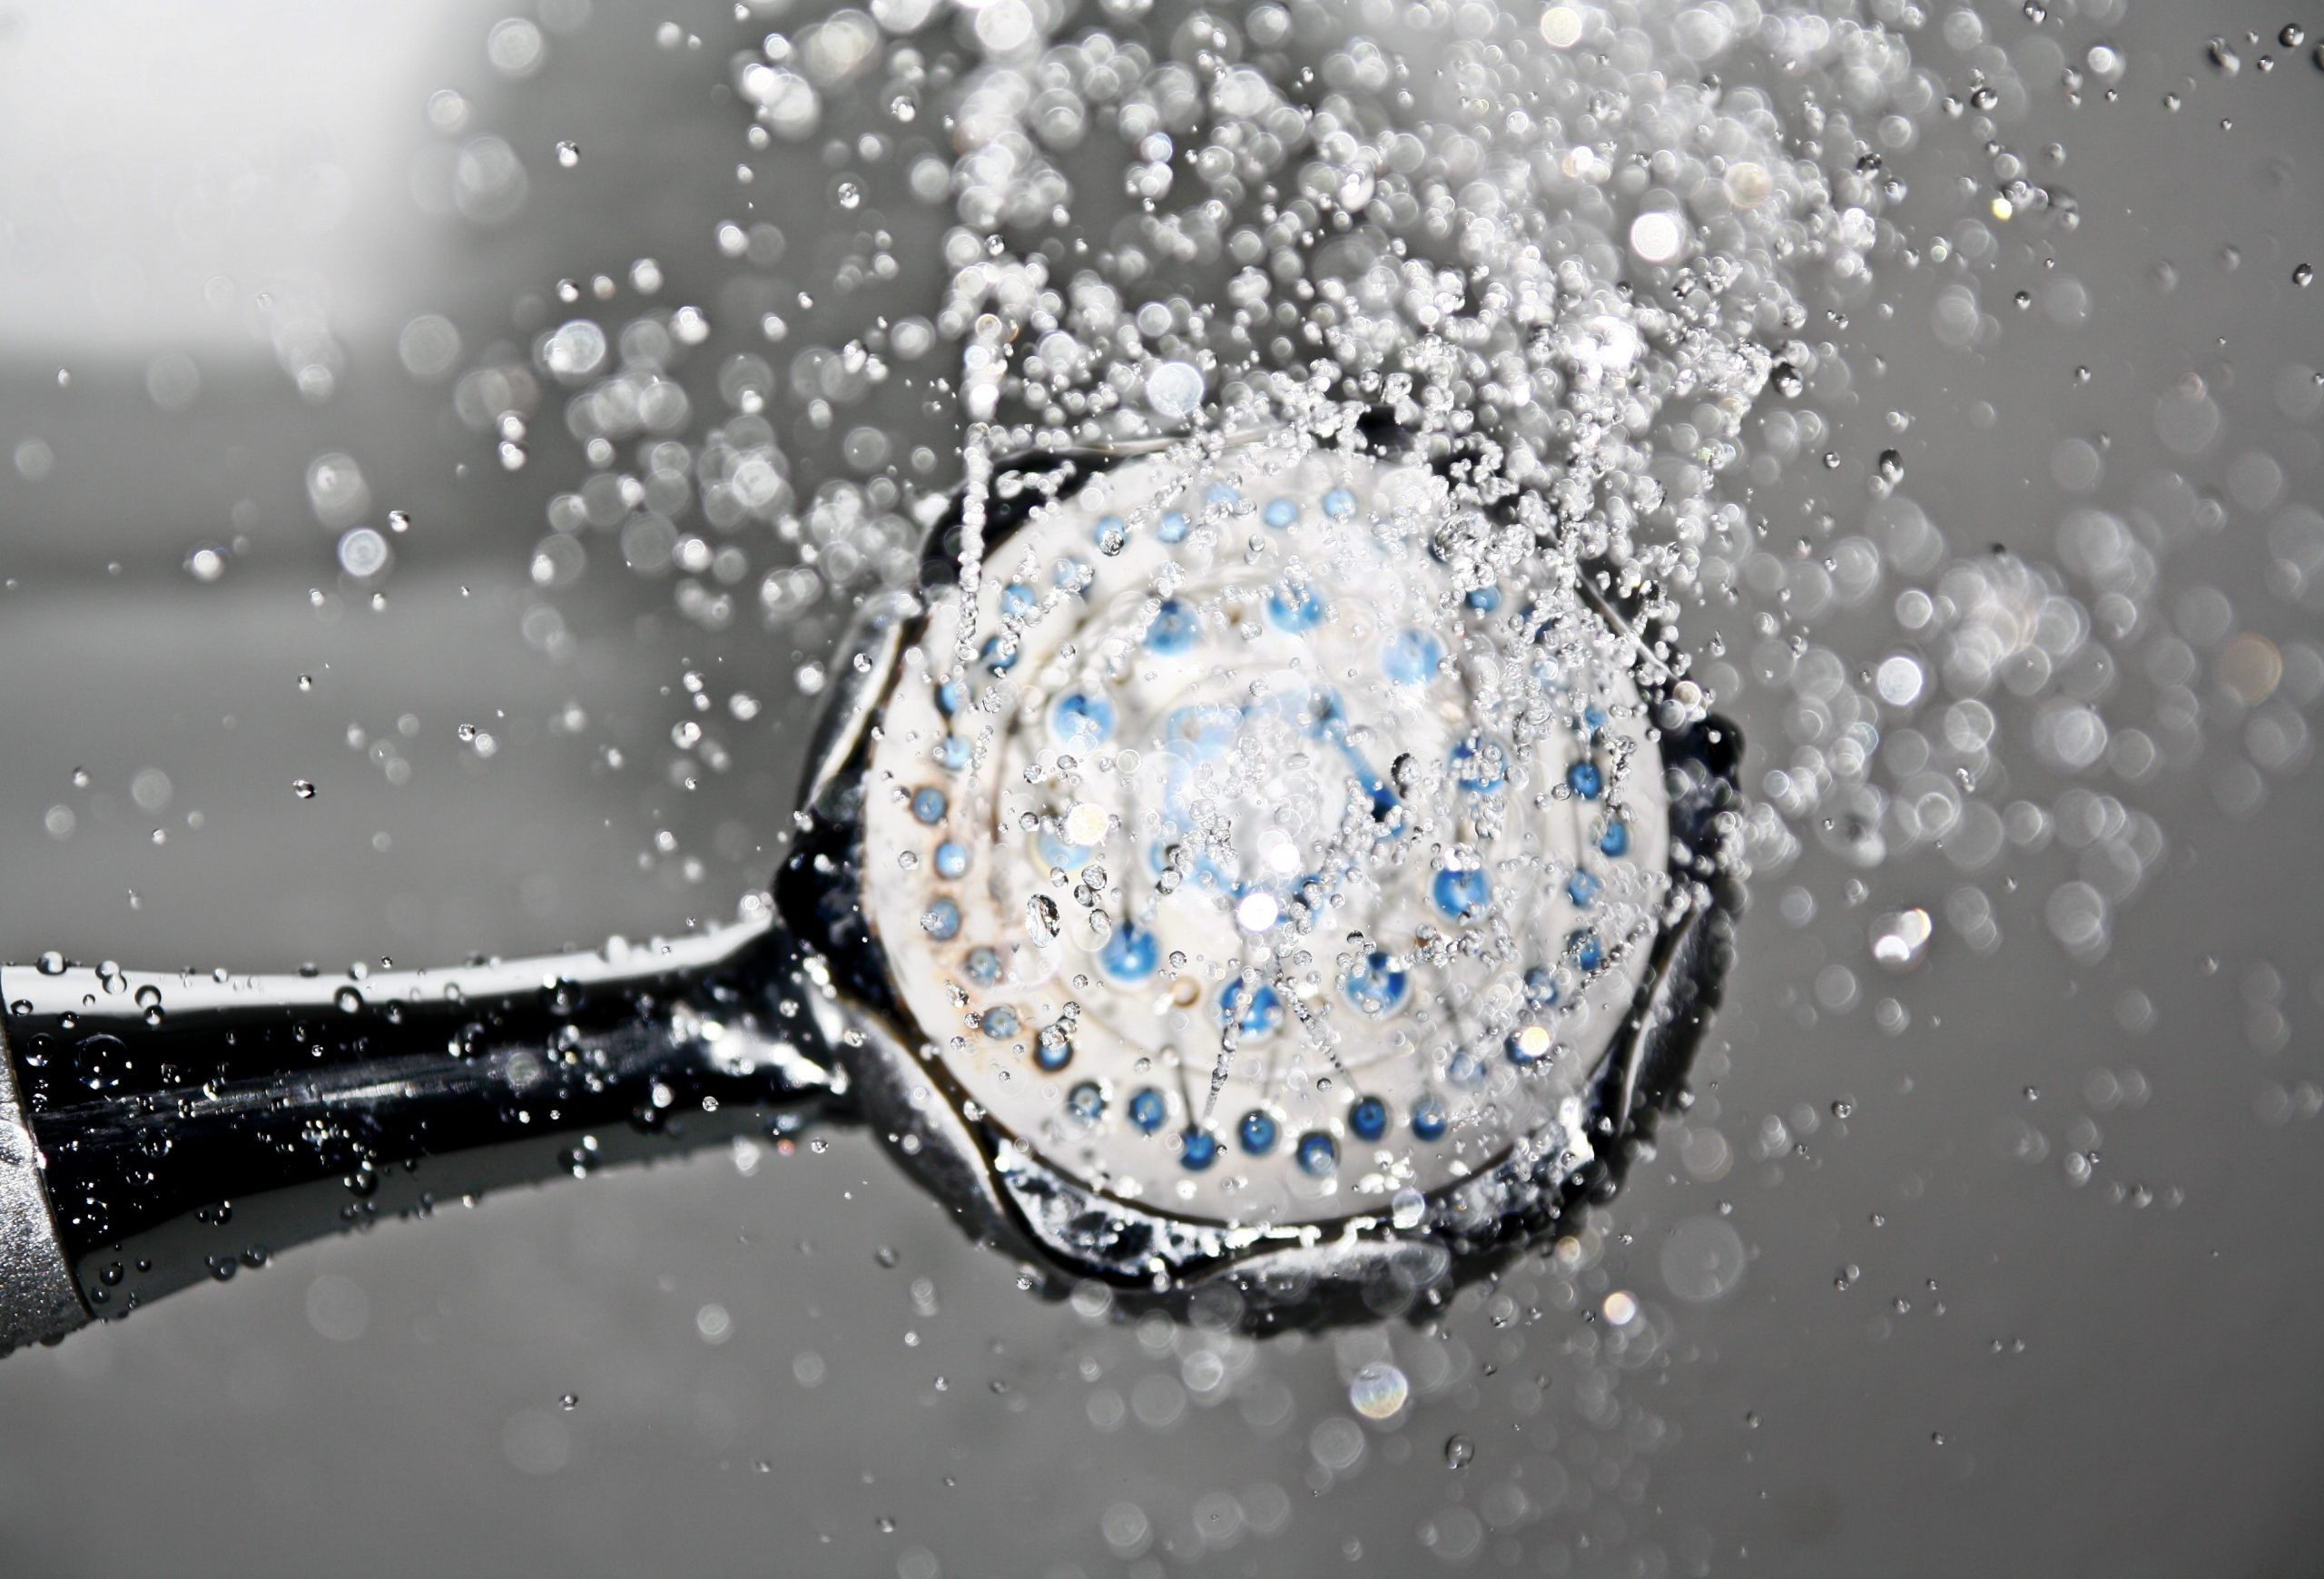 Running shower head